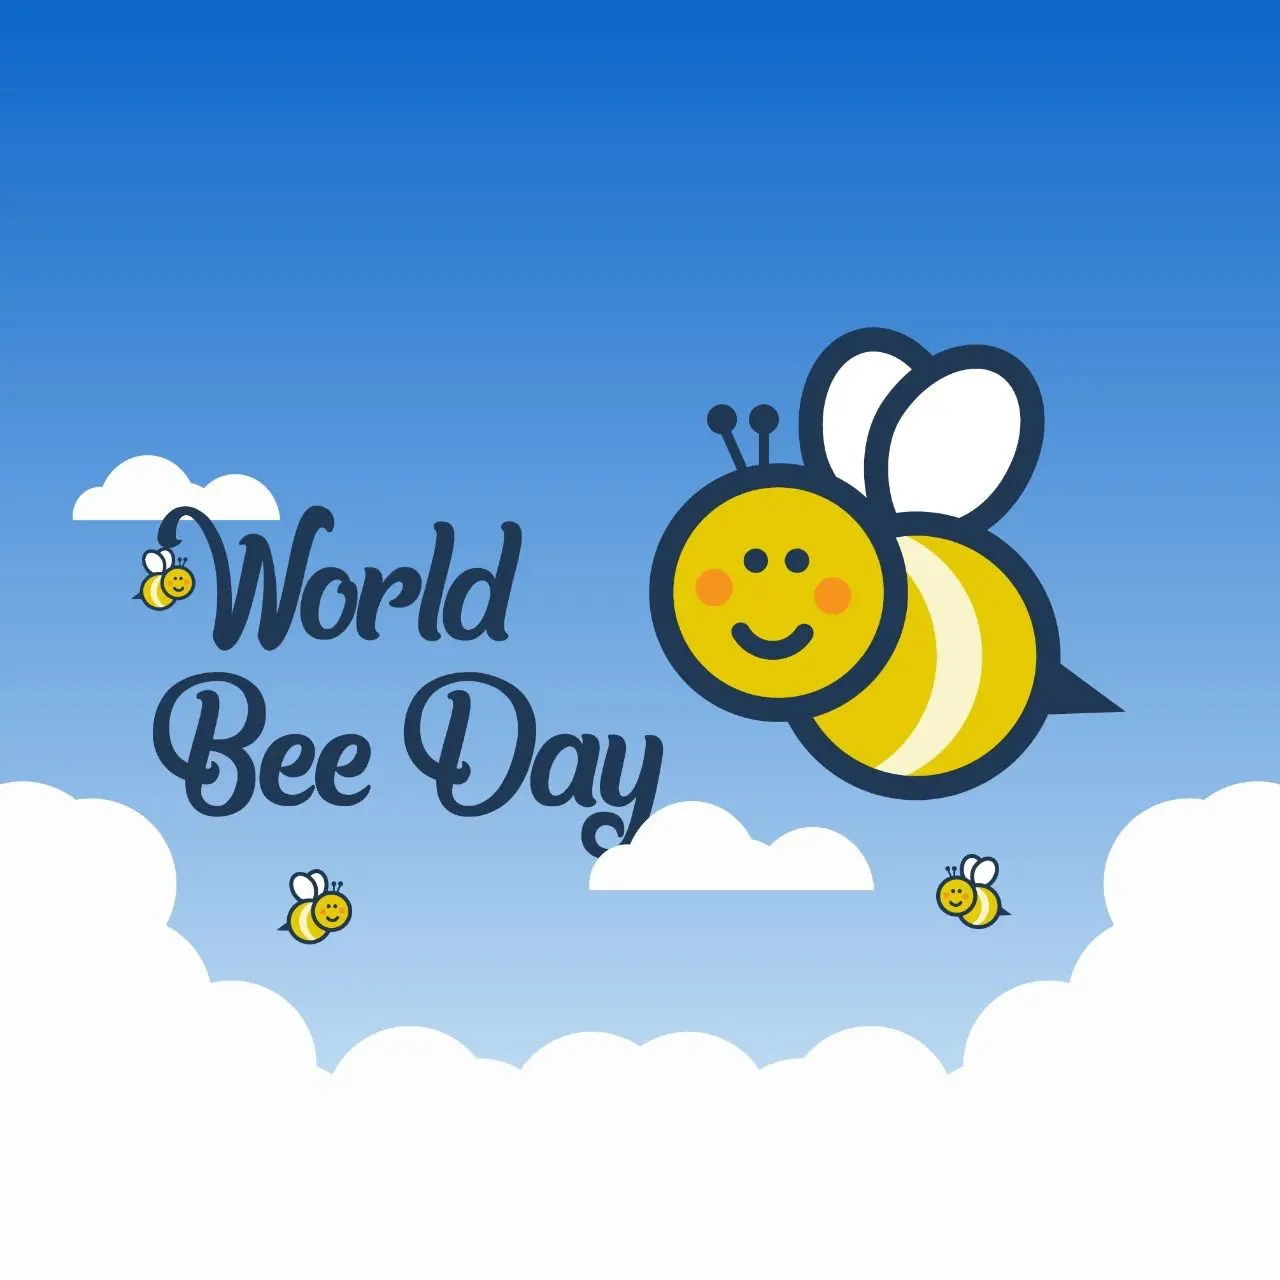 Happy World Bee Day 2020: HD Images, Wishes, Quotes, Sayings, Greetings